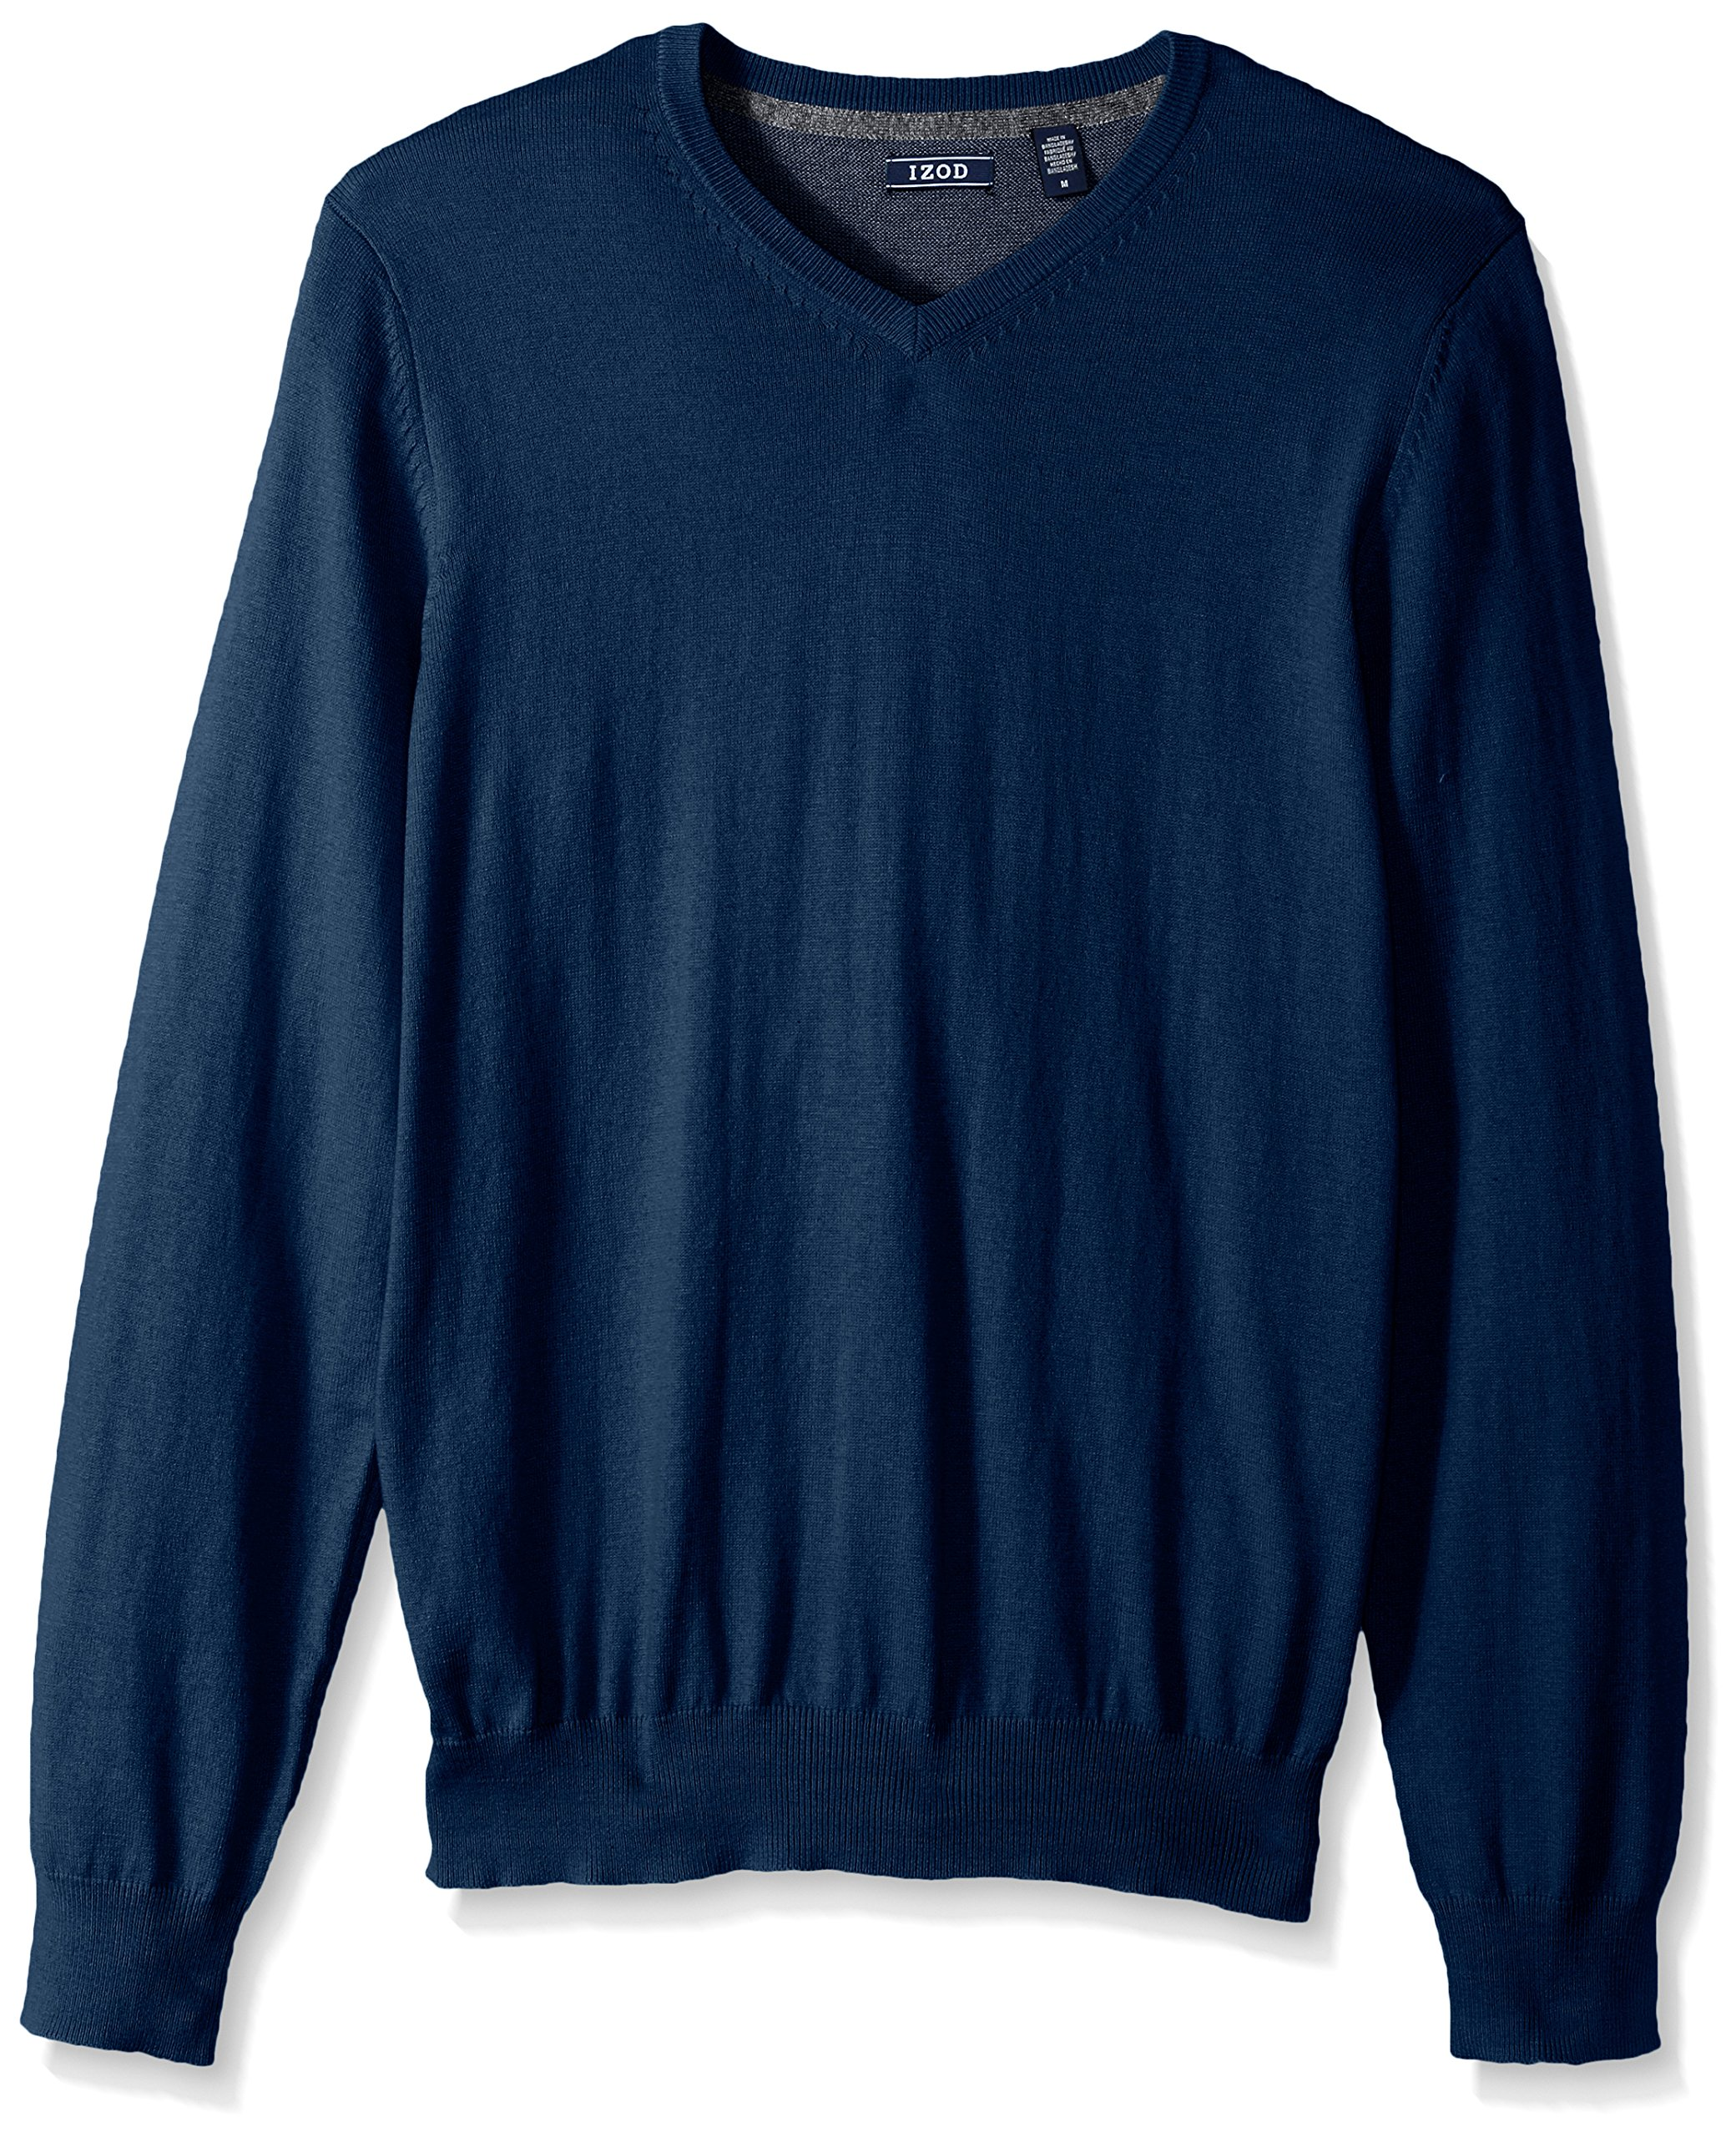 IZOD Men's Fine Gauge Solid V-Neck Sweater, Estate Blue, X-Large